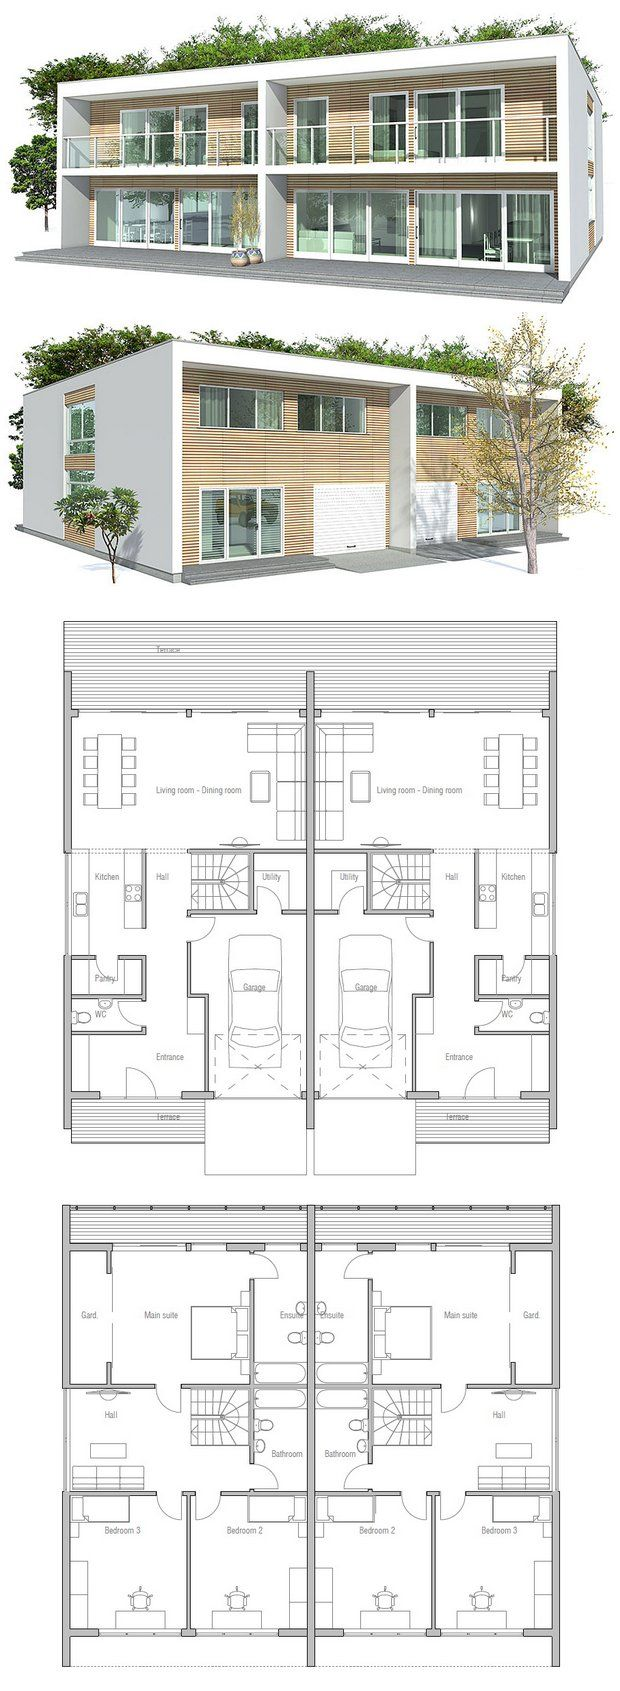 Simple Duplex House Design In Philippines: Duplex House- A House Divided Into Two Apartments, With A